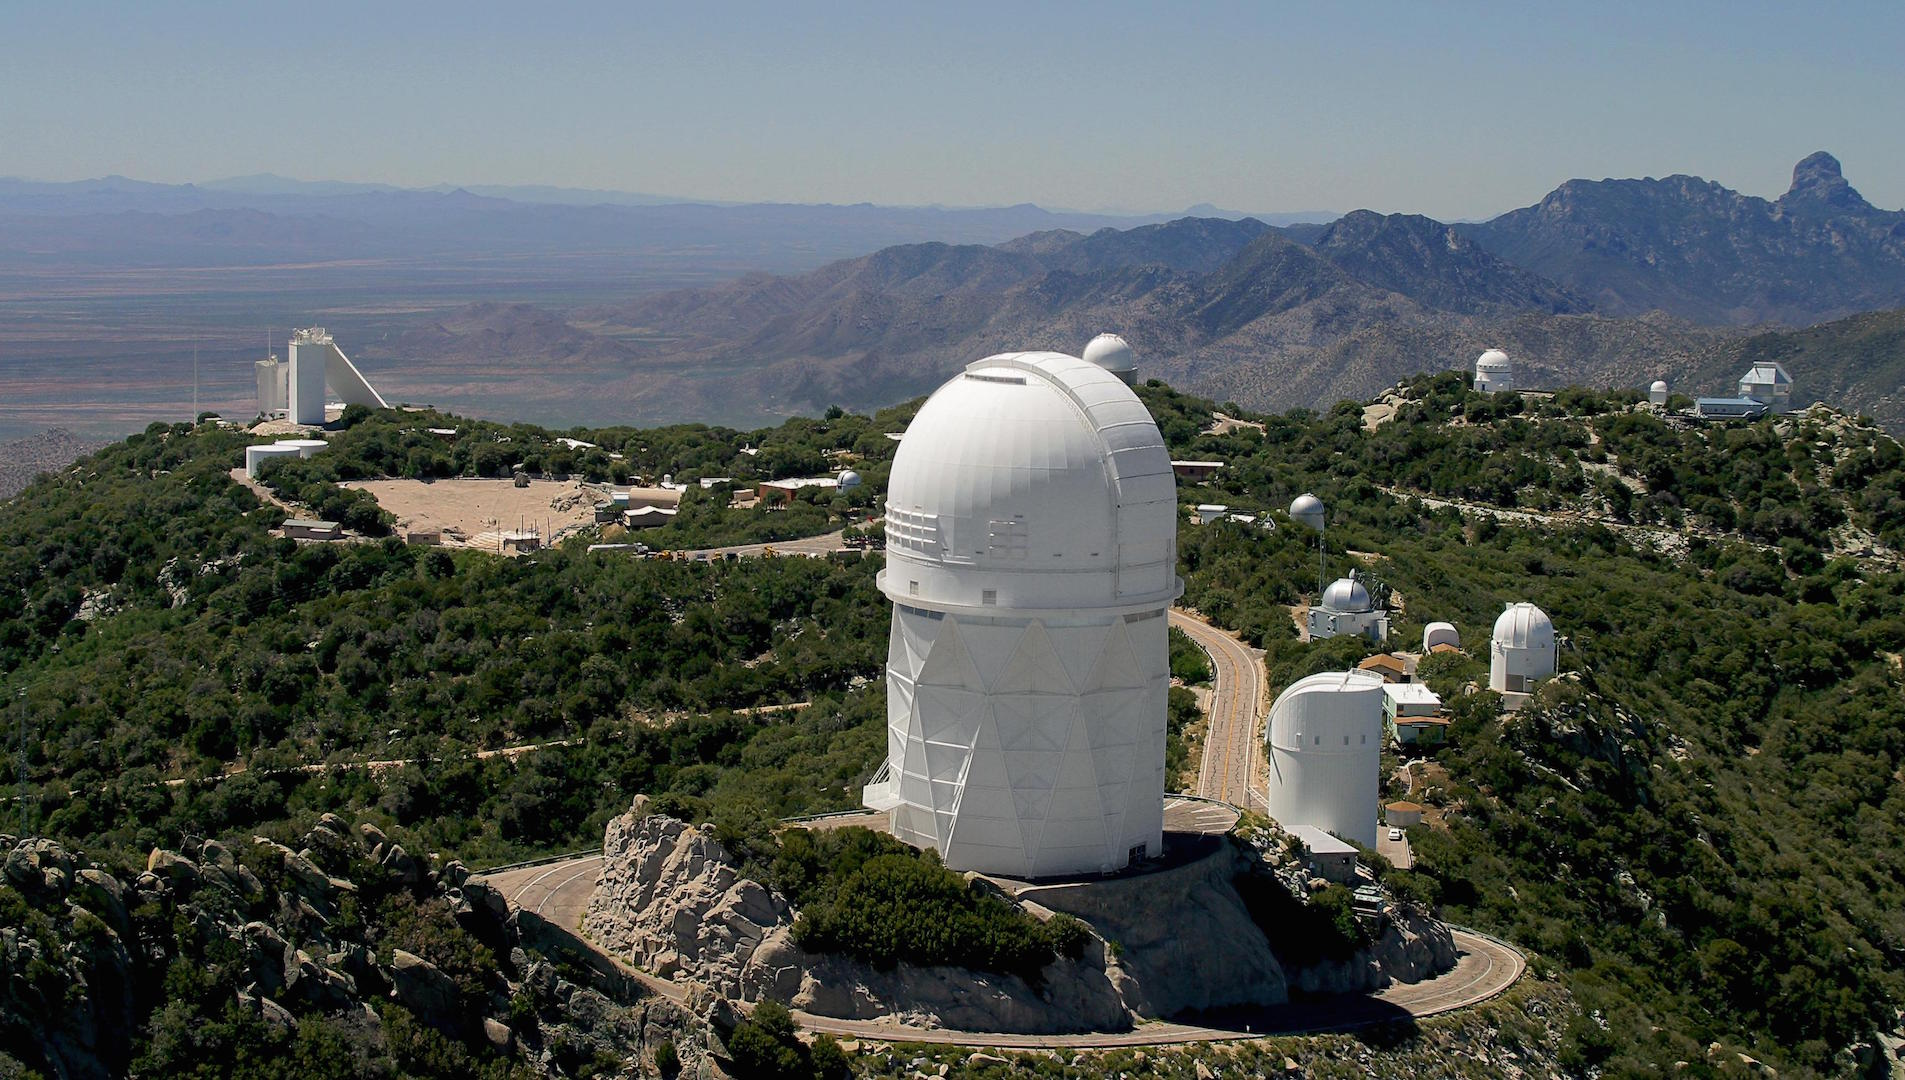 White domes and optical telescopes on the mountain peaks above the desert below.